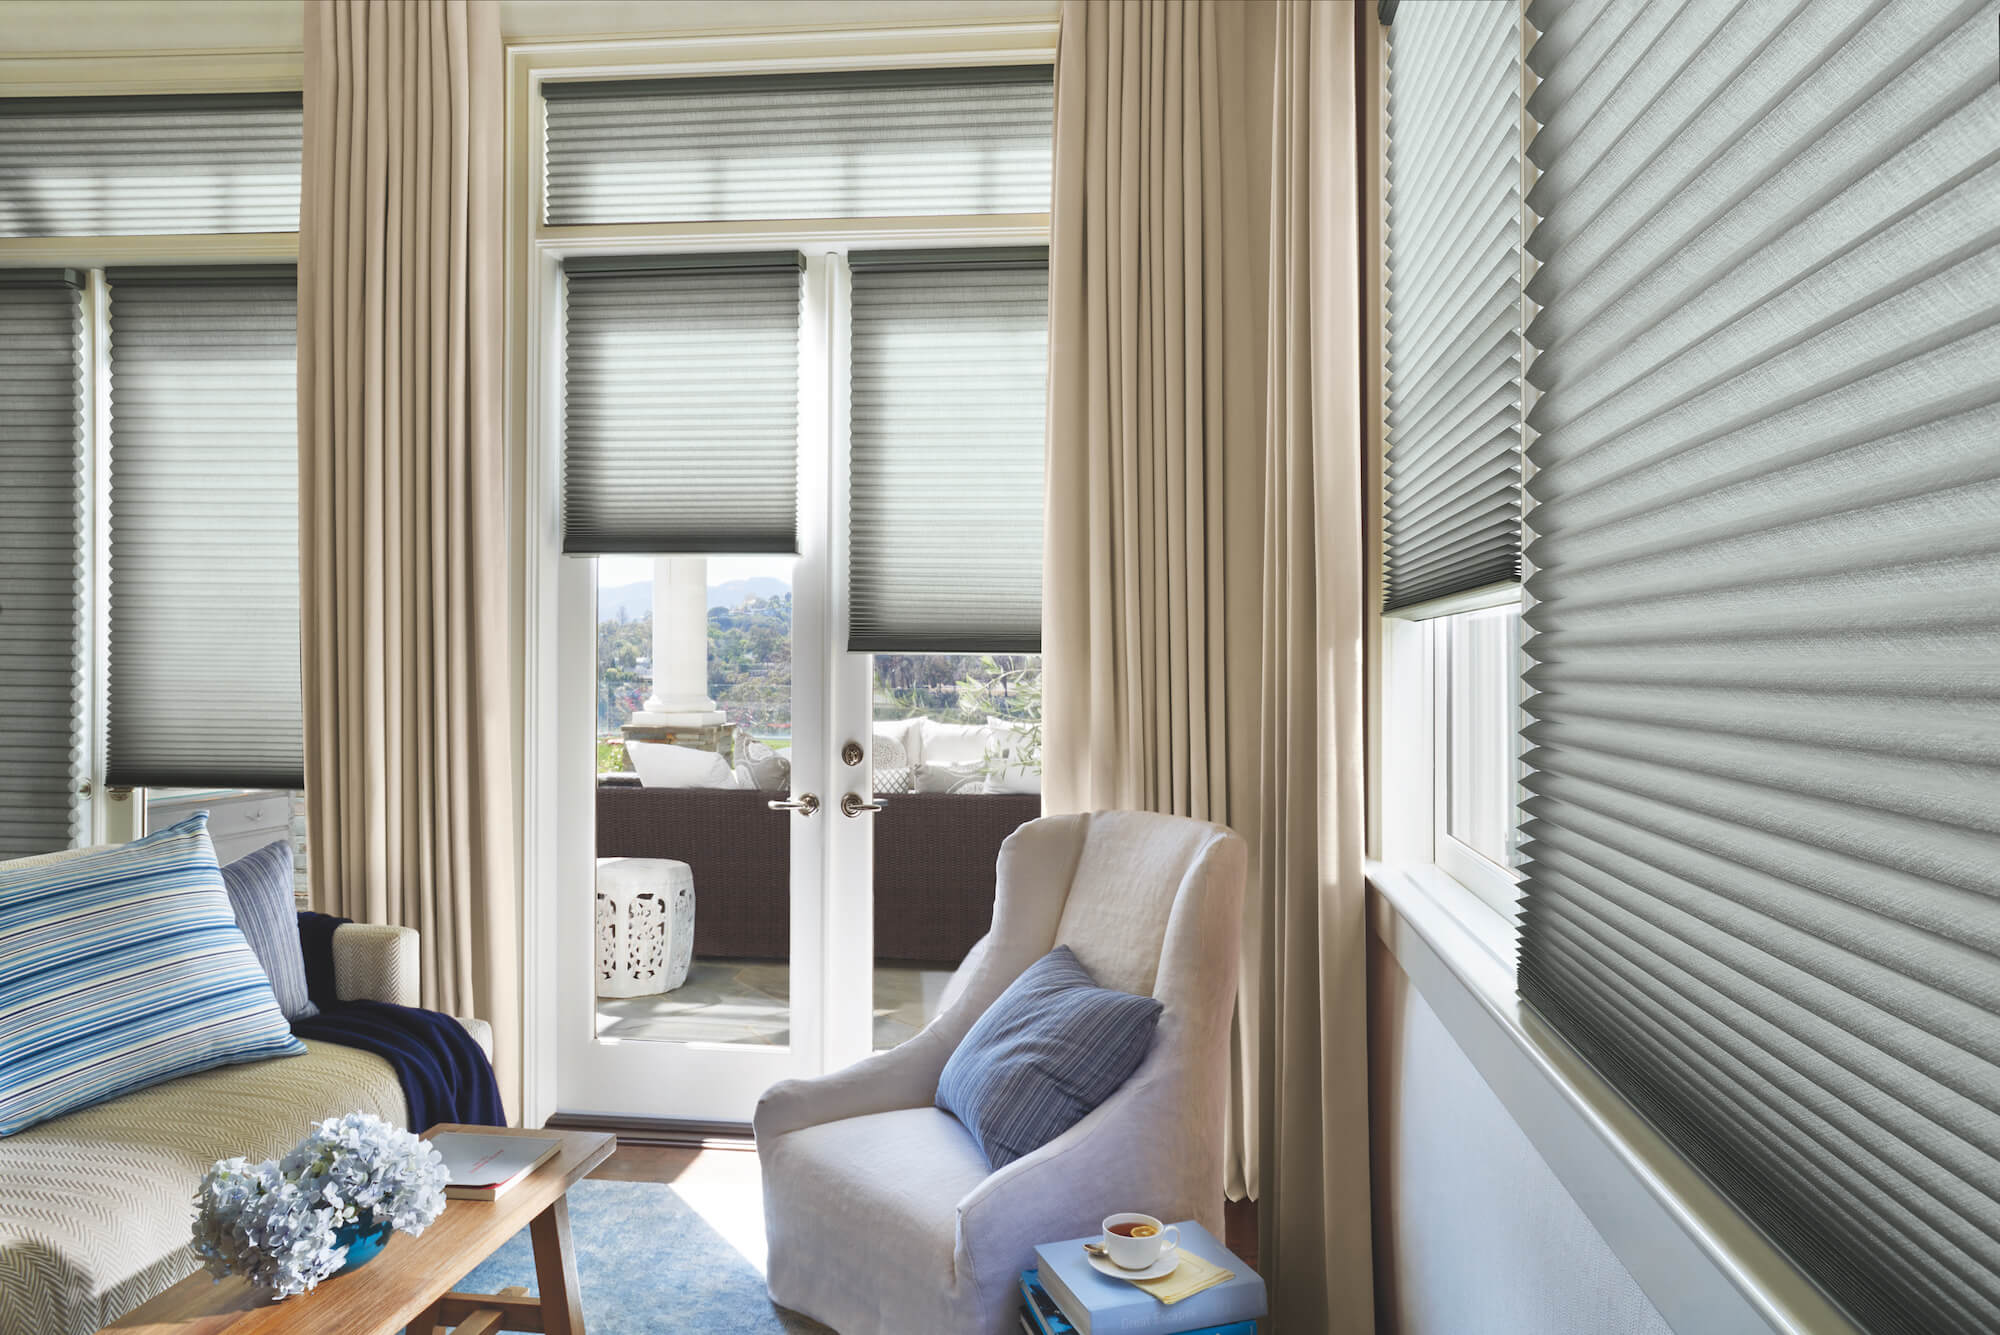 Duette Honeycomb Shades on living room windows and doors